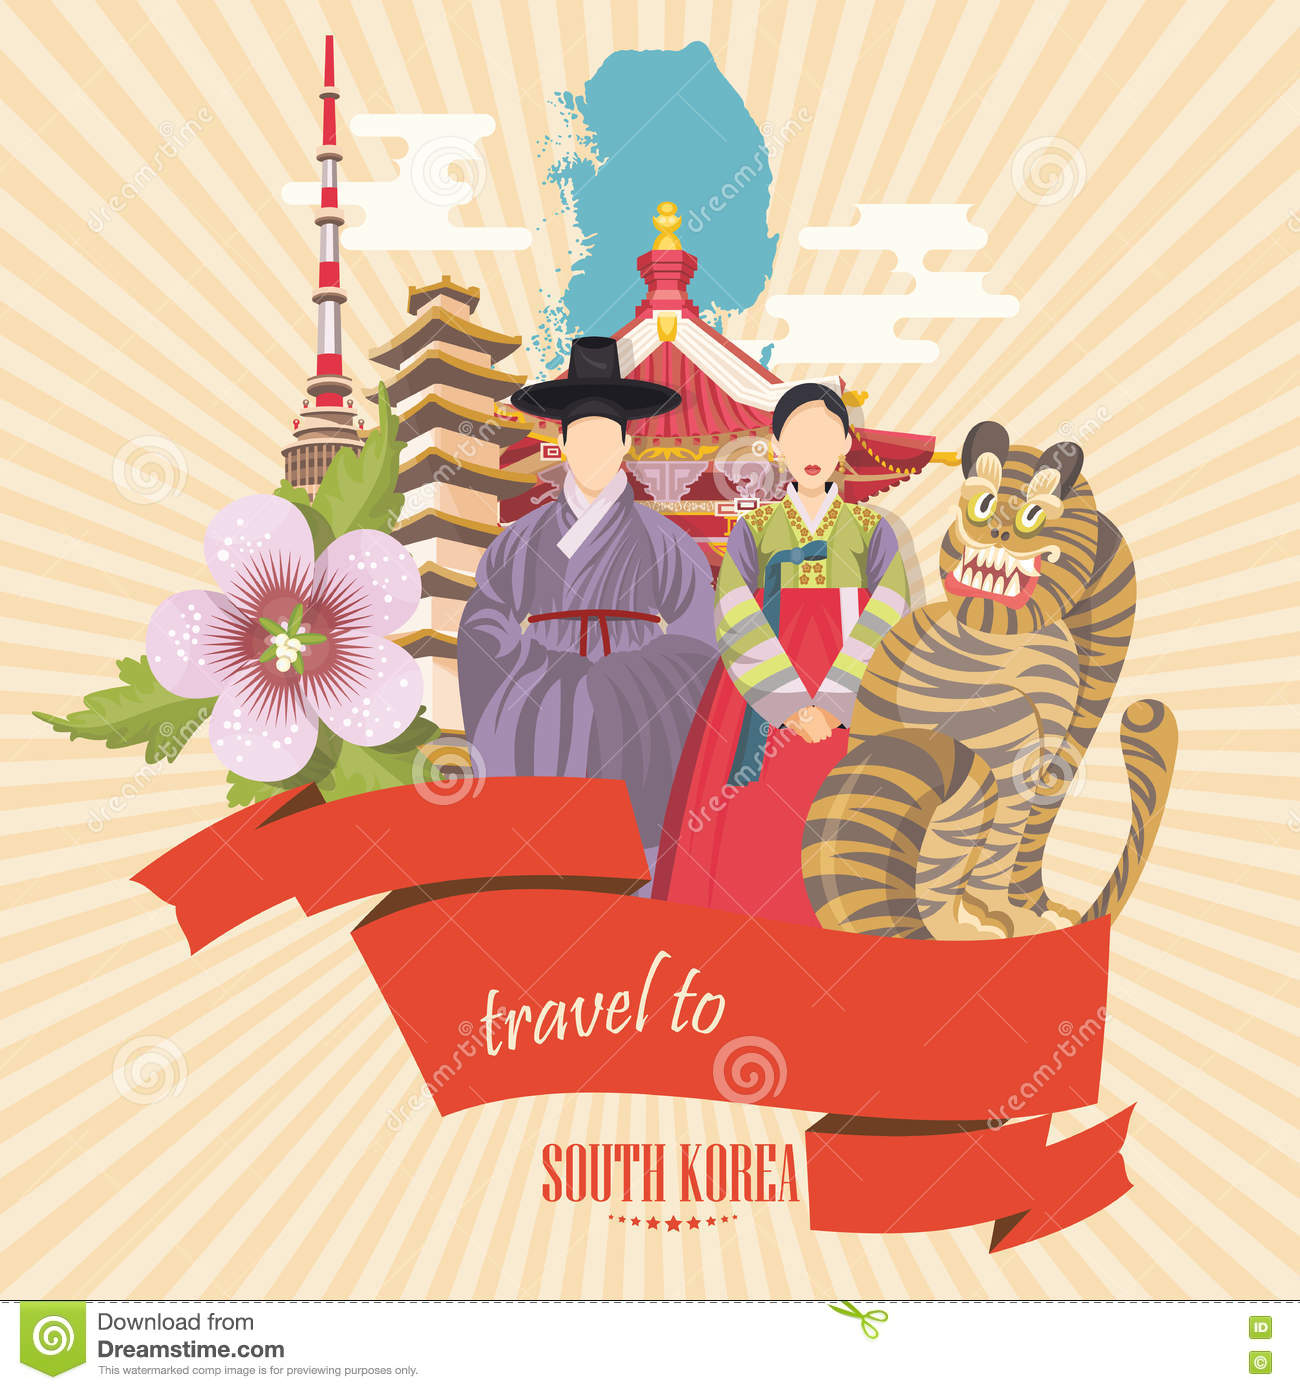 Korean poster design - South Korea Travel Poster With Pagodas Tradition Clothes And Signs Korea Journey Banner With Korean Objects